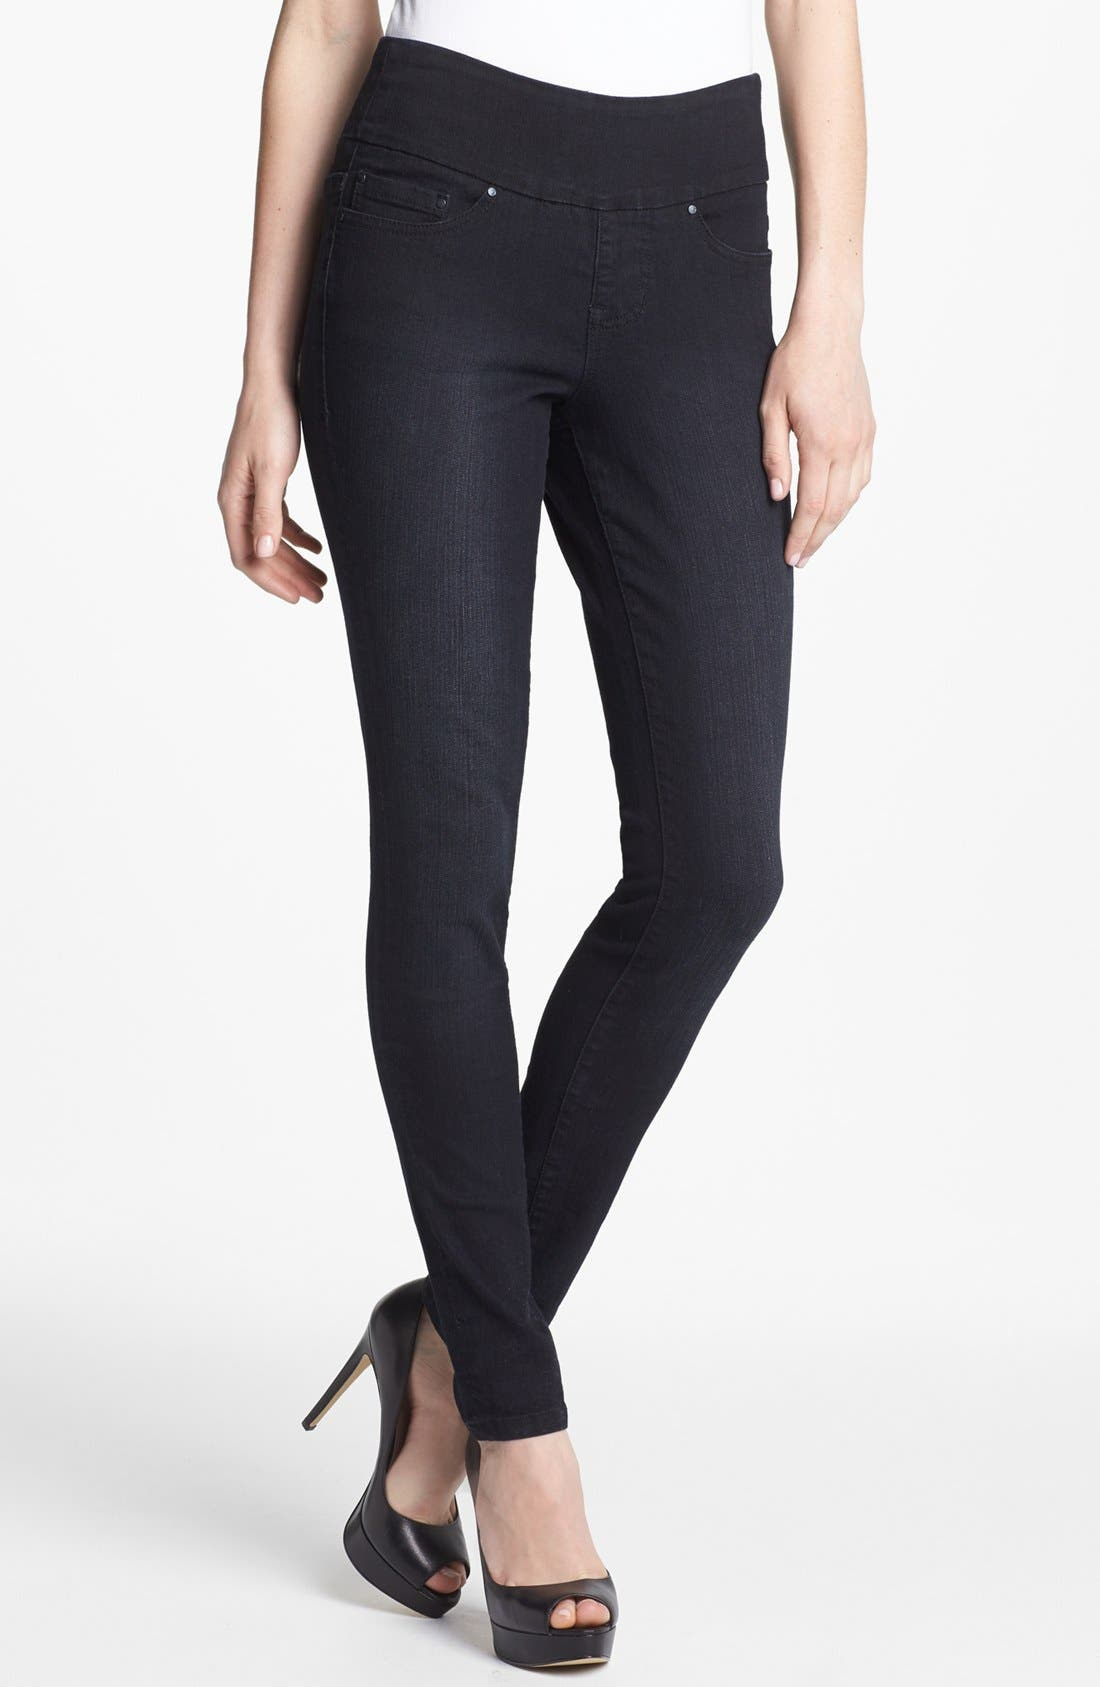 Alternate Image 3  - Jag Jeans 'Nora' Skinny Stretch Jeans (Regular & Petite)